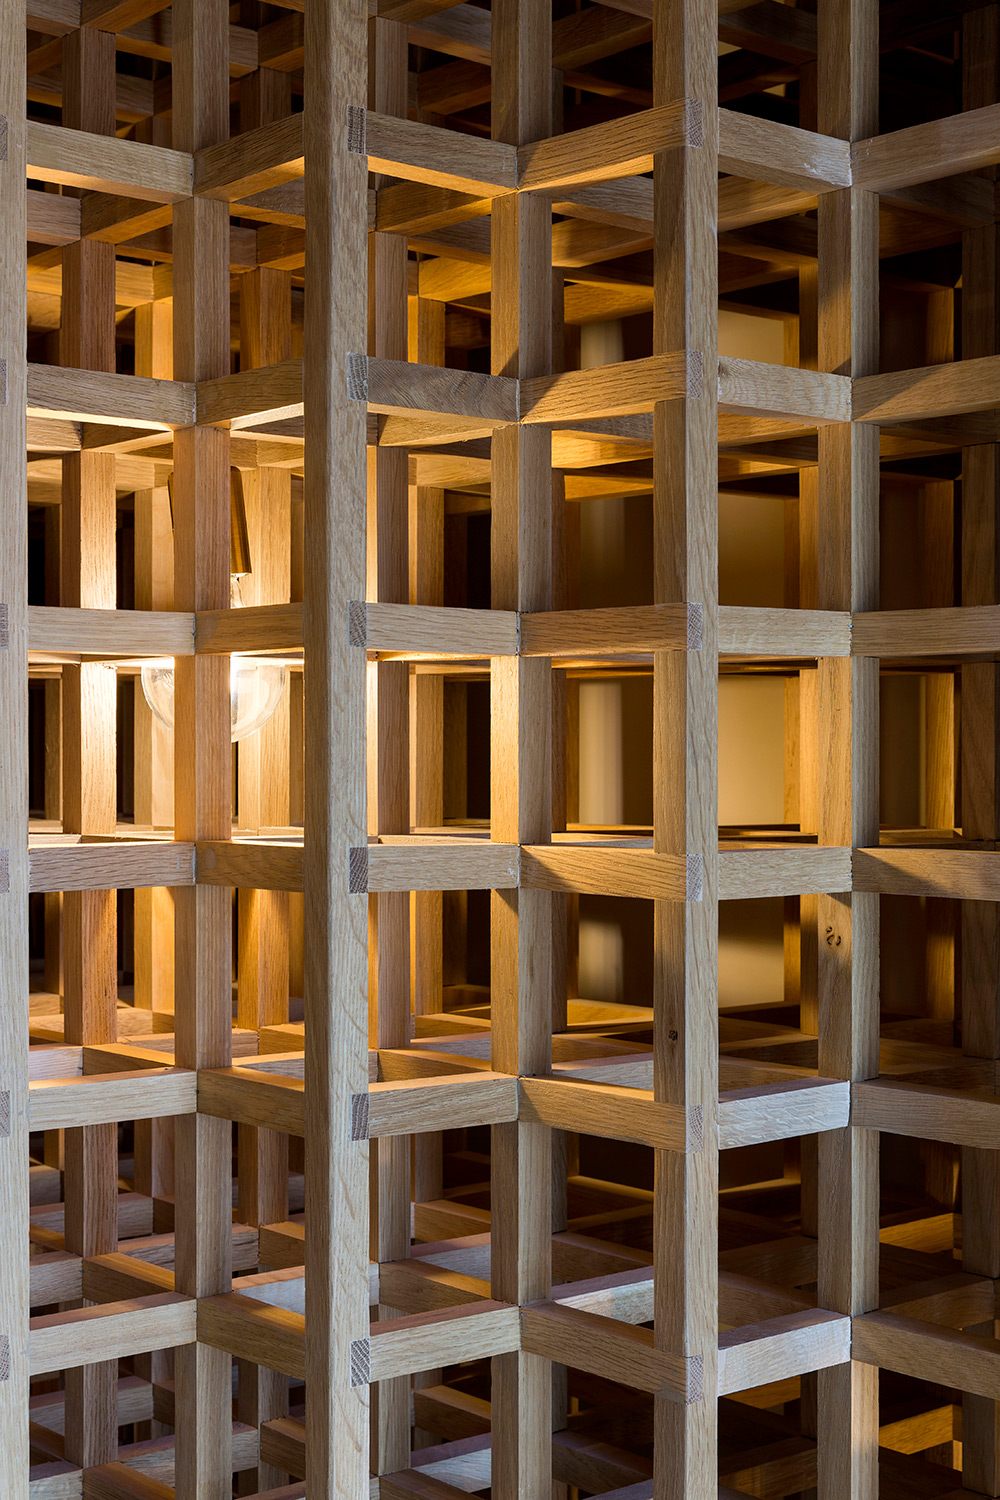 The entire space is enveloped in tens of thousands of hollow, white oak cubes assembled, with accent lighting that gives the restaurant a celestial feel. Filippo Bamberghi